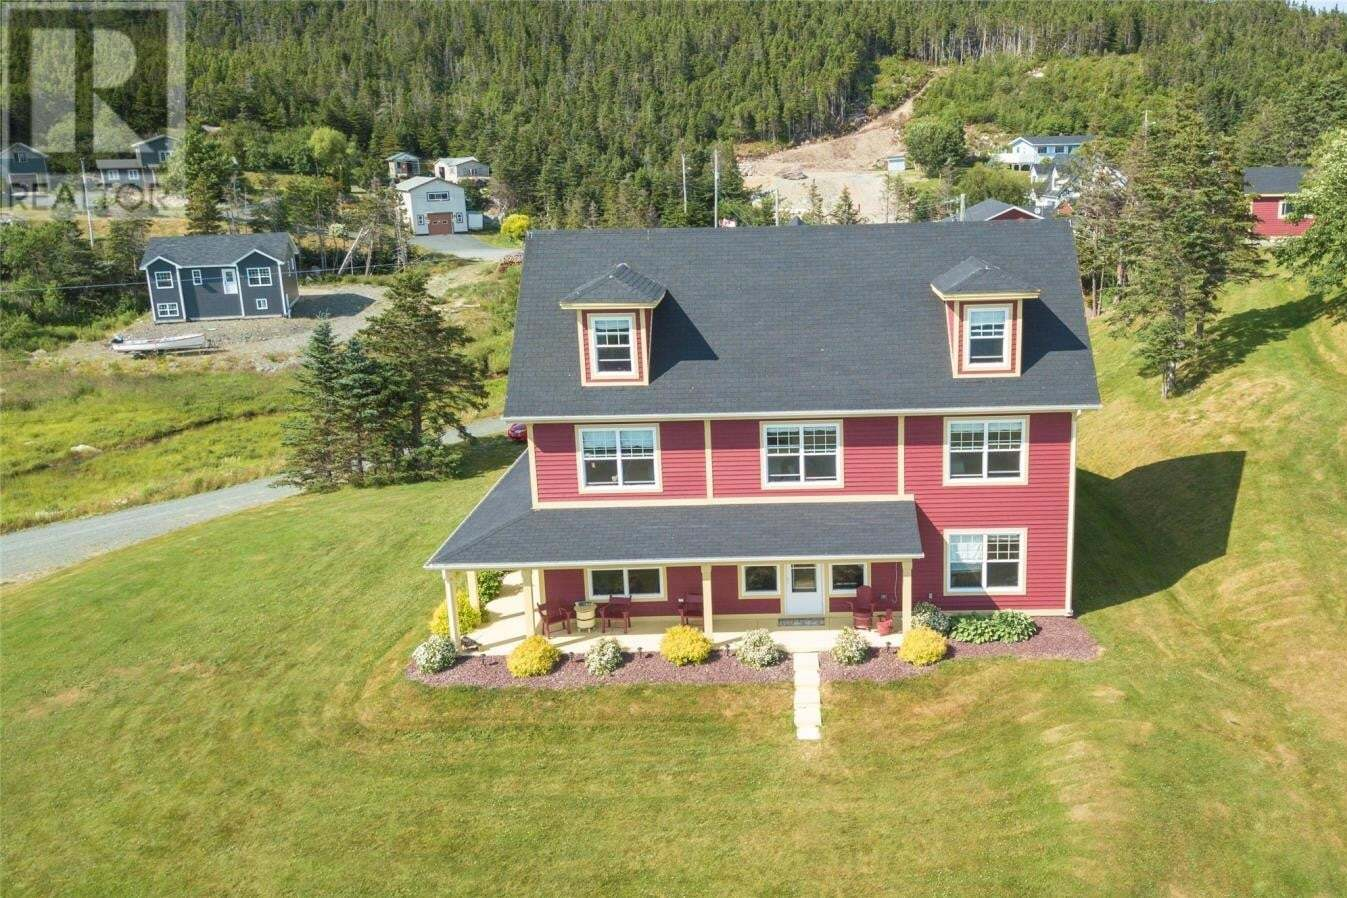 House for sale at 24-36 Bread And Cheese Rd Bay Bulls Newfoundland - MLS: 1207470